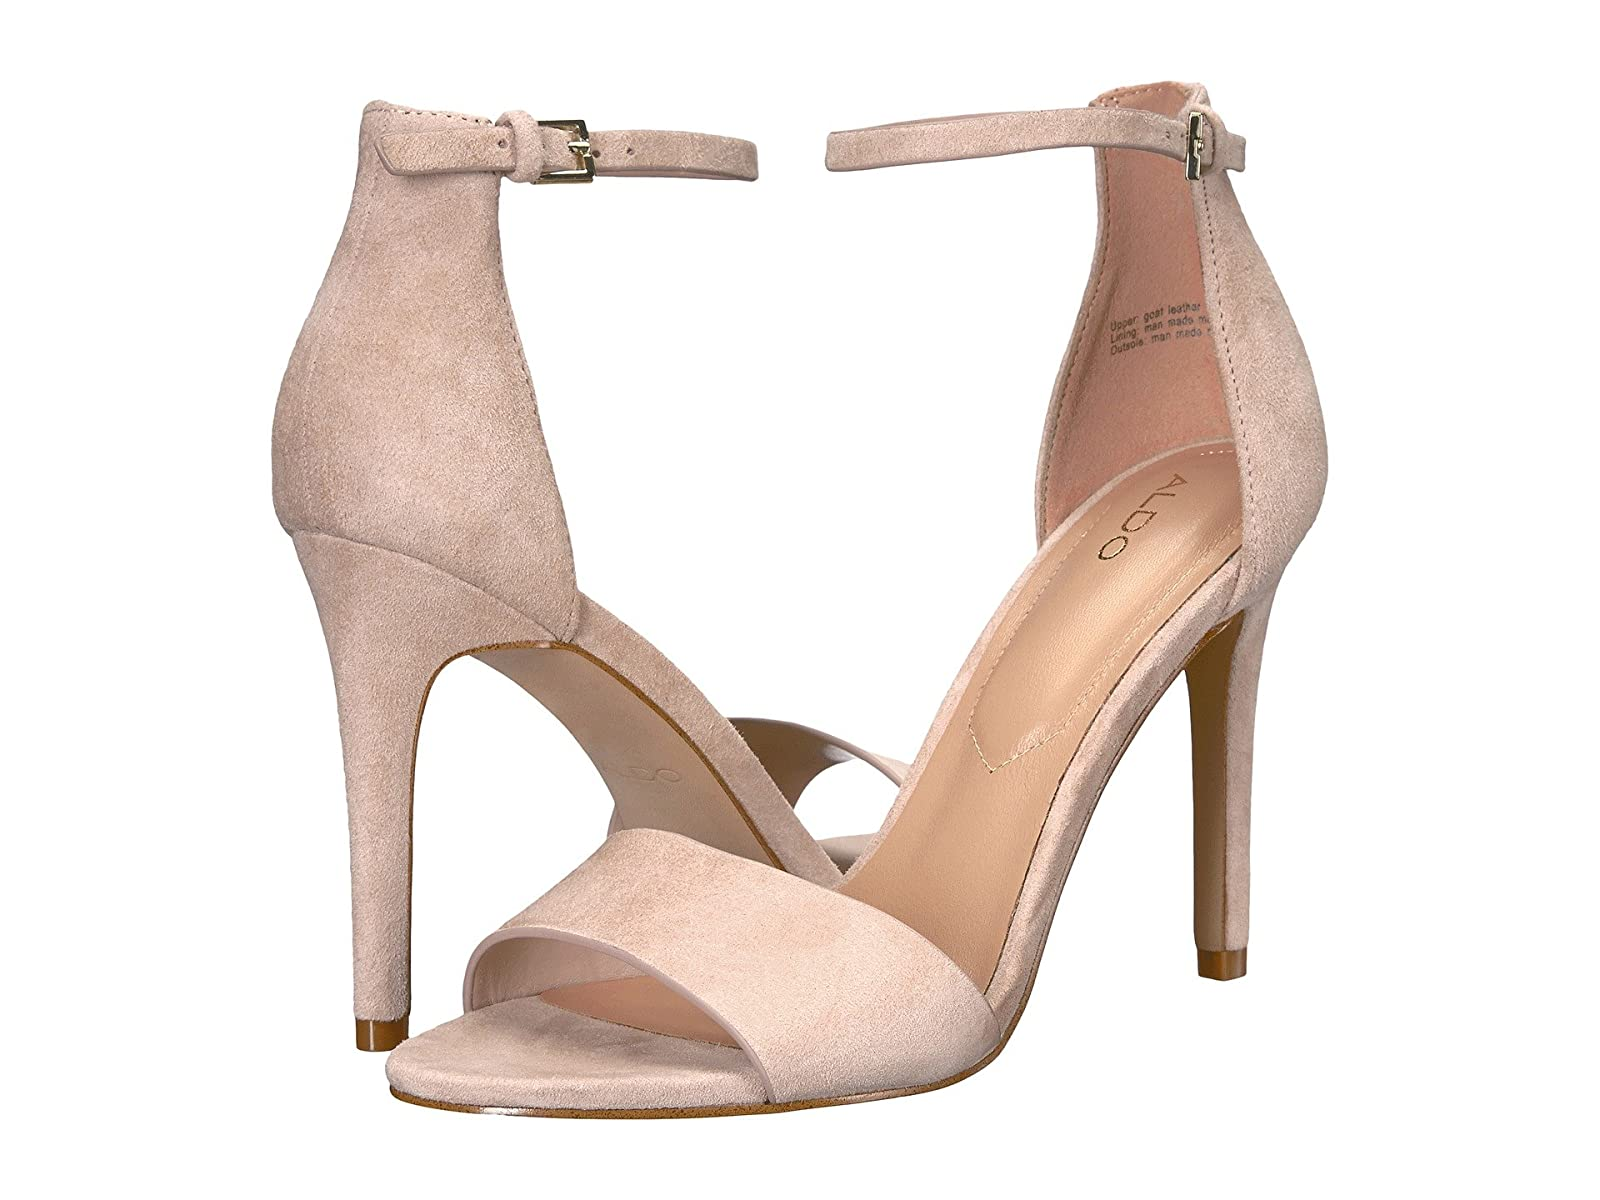 ALDO FiollaCheap and distinctive eye-catching shoes